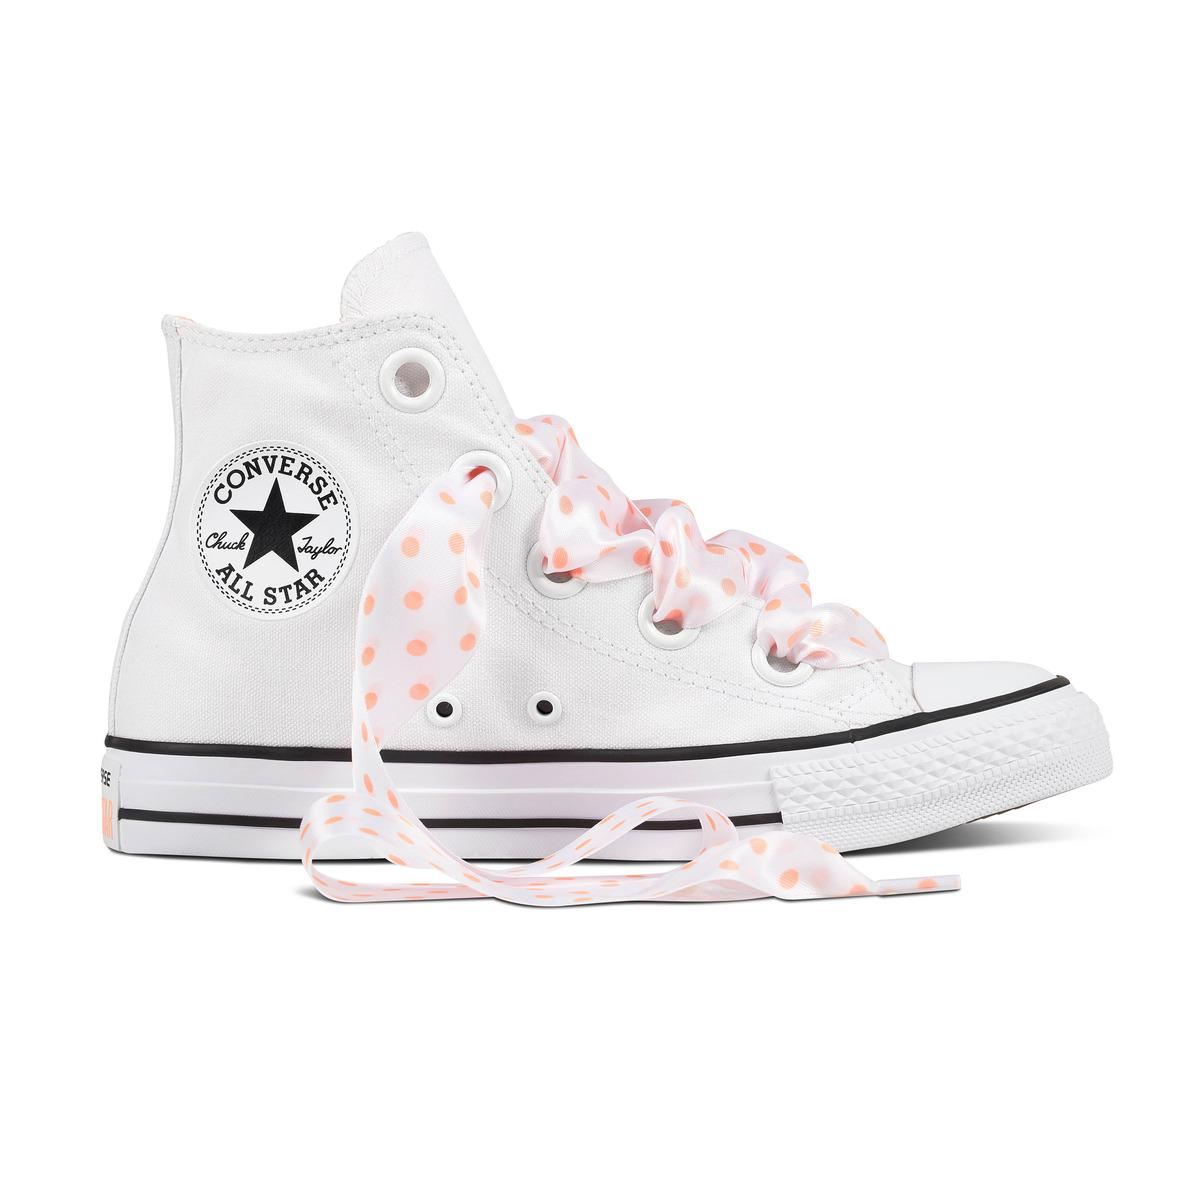 0893fa4cba5577 Converse Chuck Taylor All Star Big Eyelet Hi Casual Trainers in ...